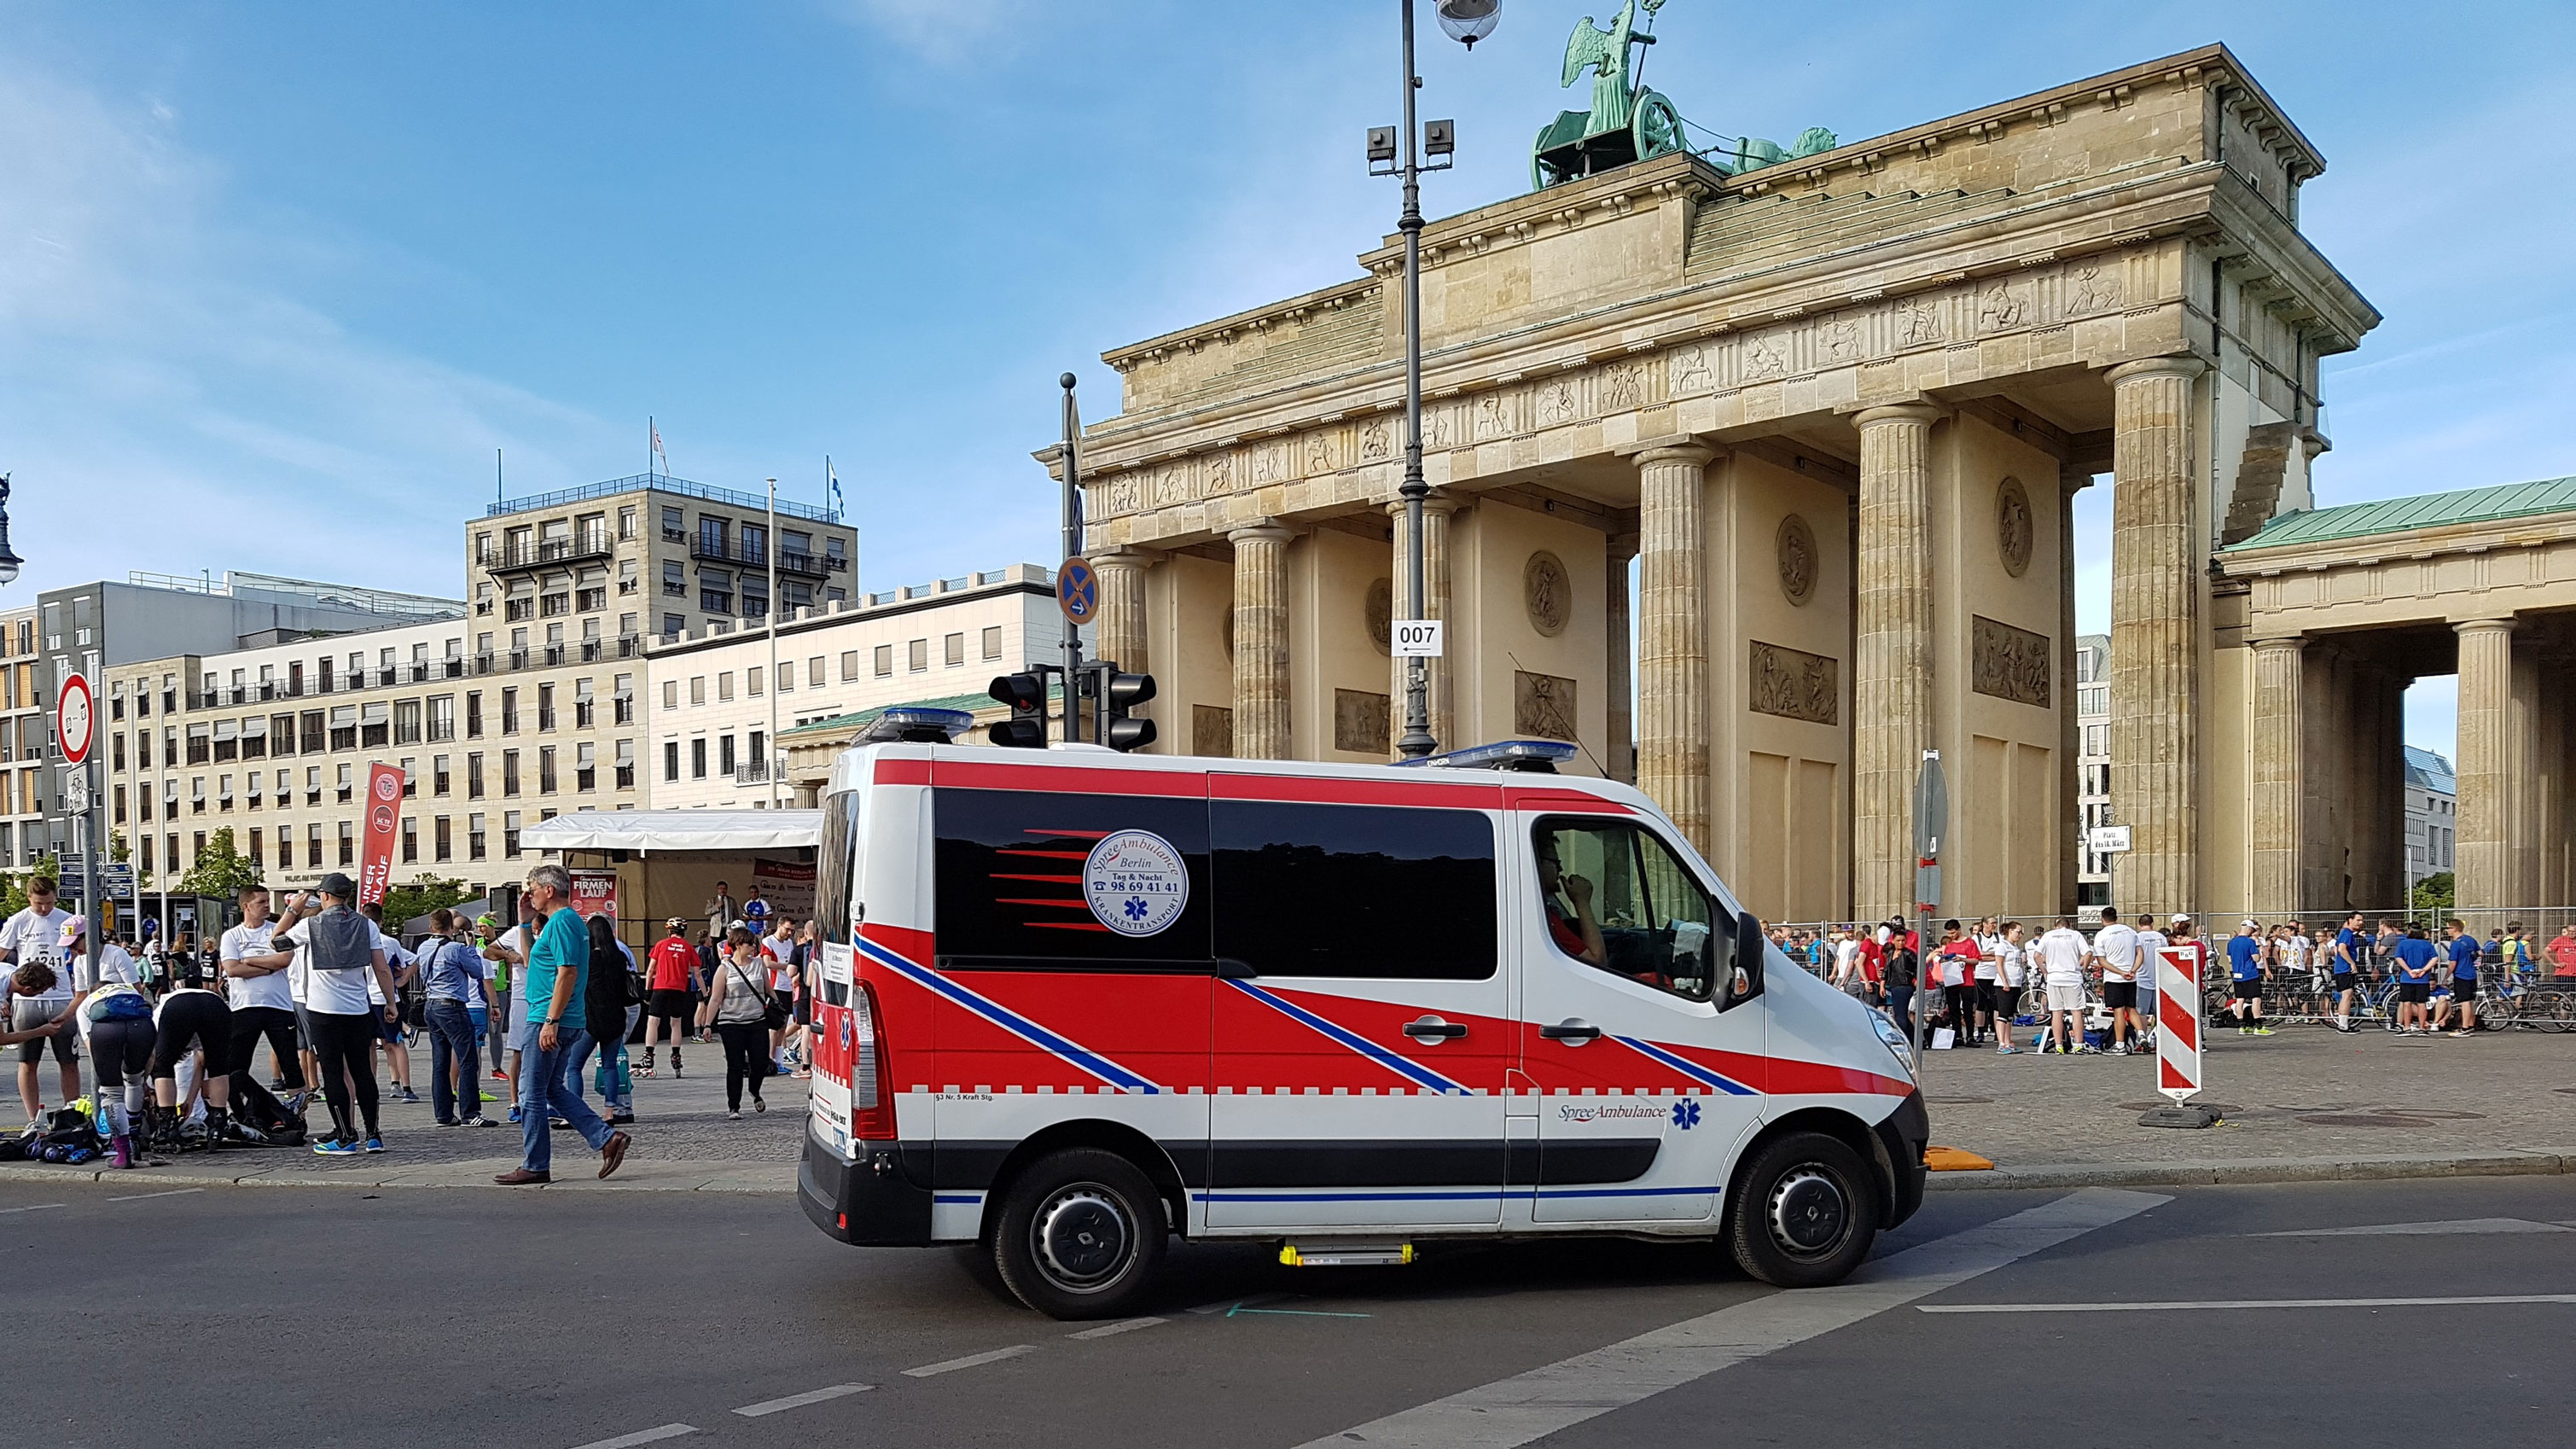 Brandenburger Tor Spree Ambulance - Spree-Ambulance GmbH & Co. KG